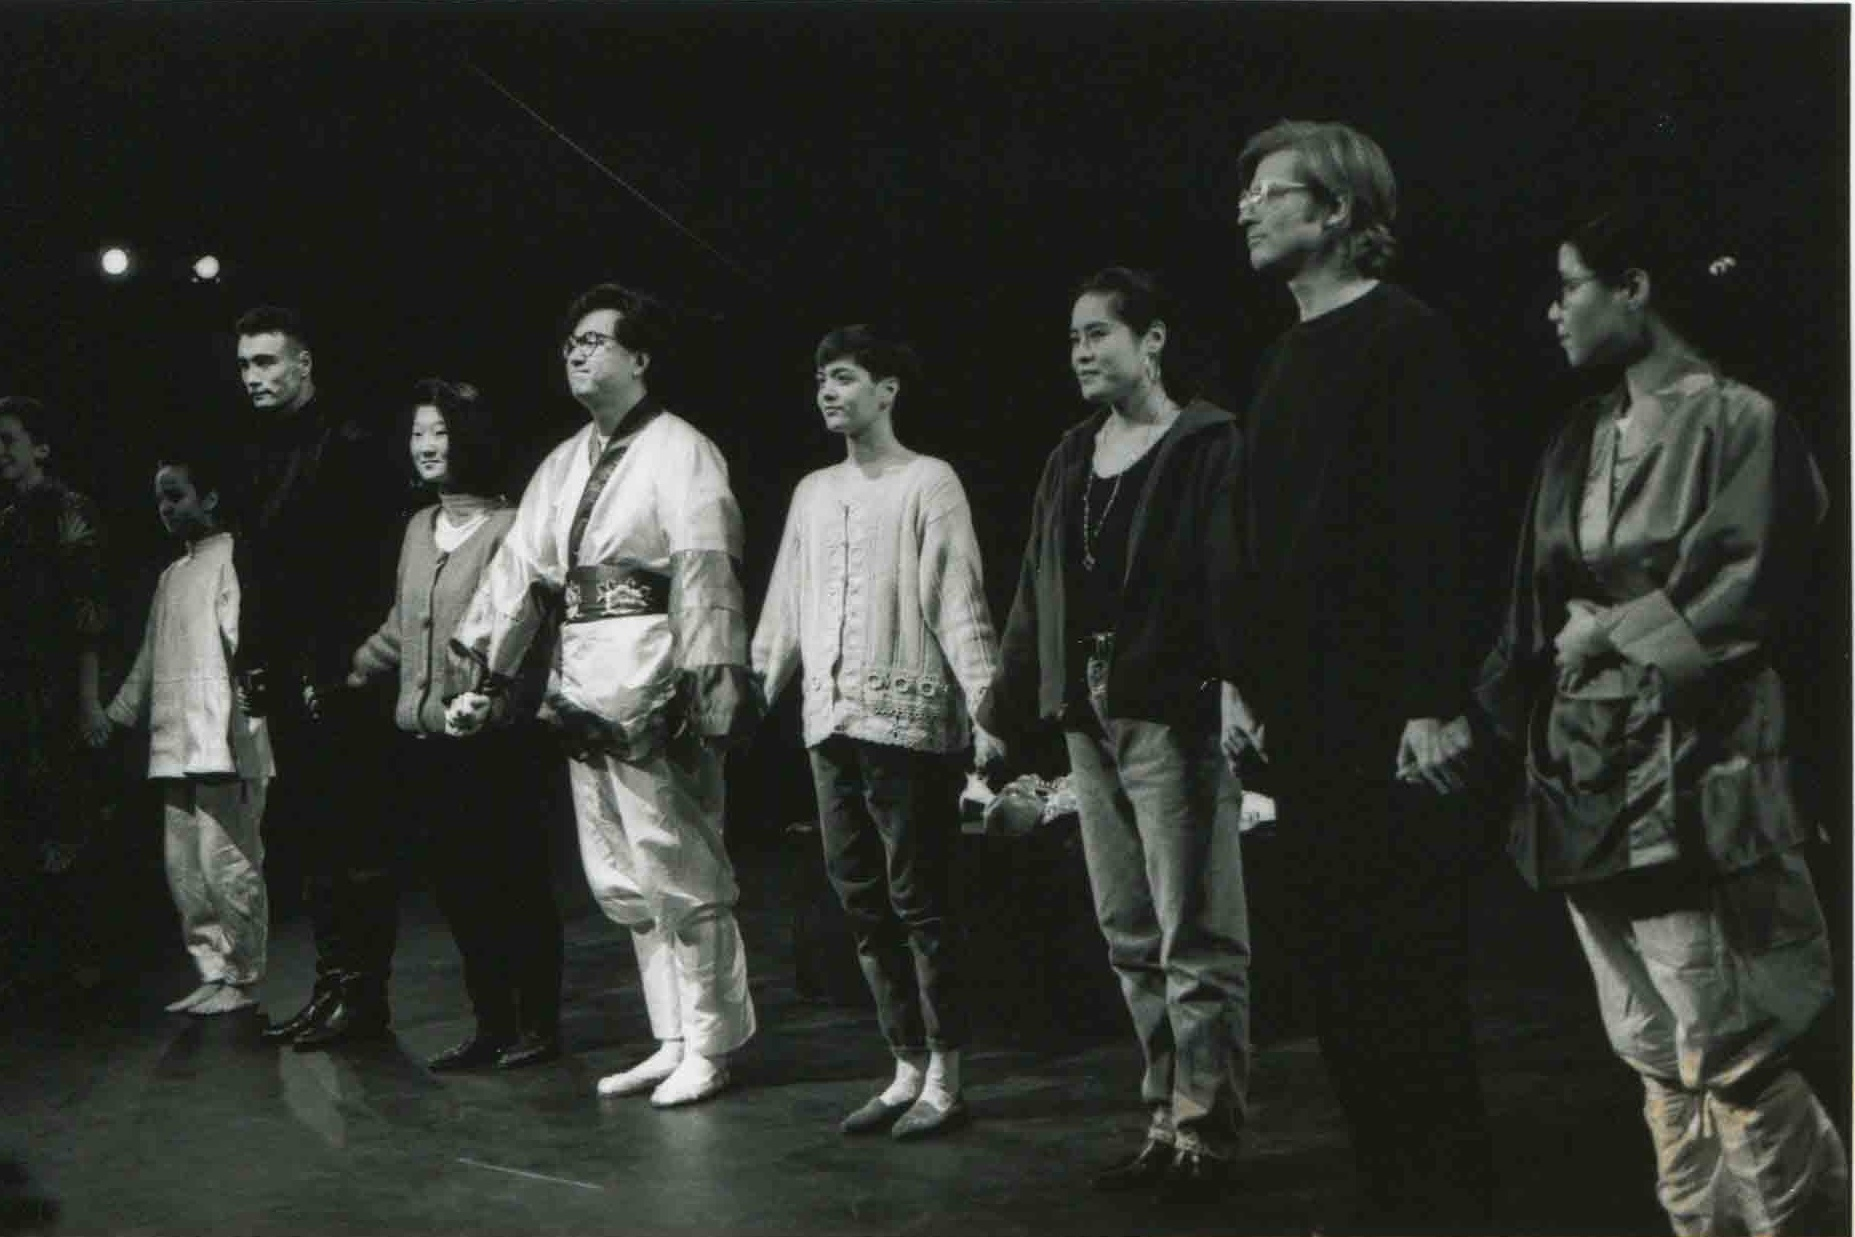 HISTORY OF MU - Discover the rich history of Mu and Asian American theater.